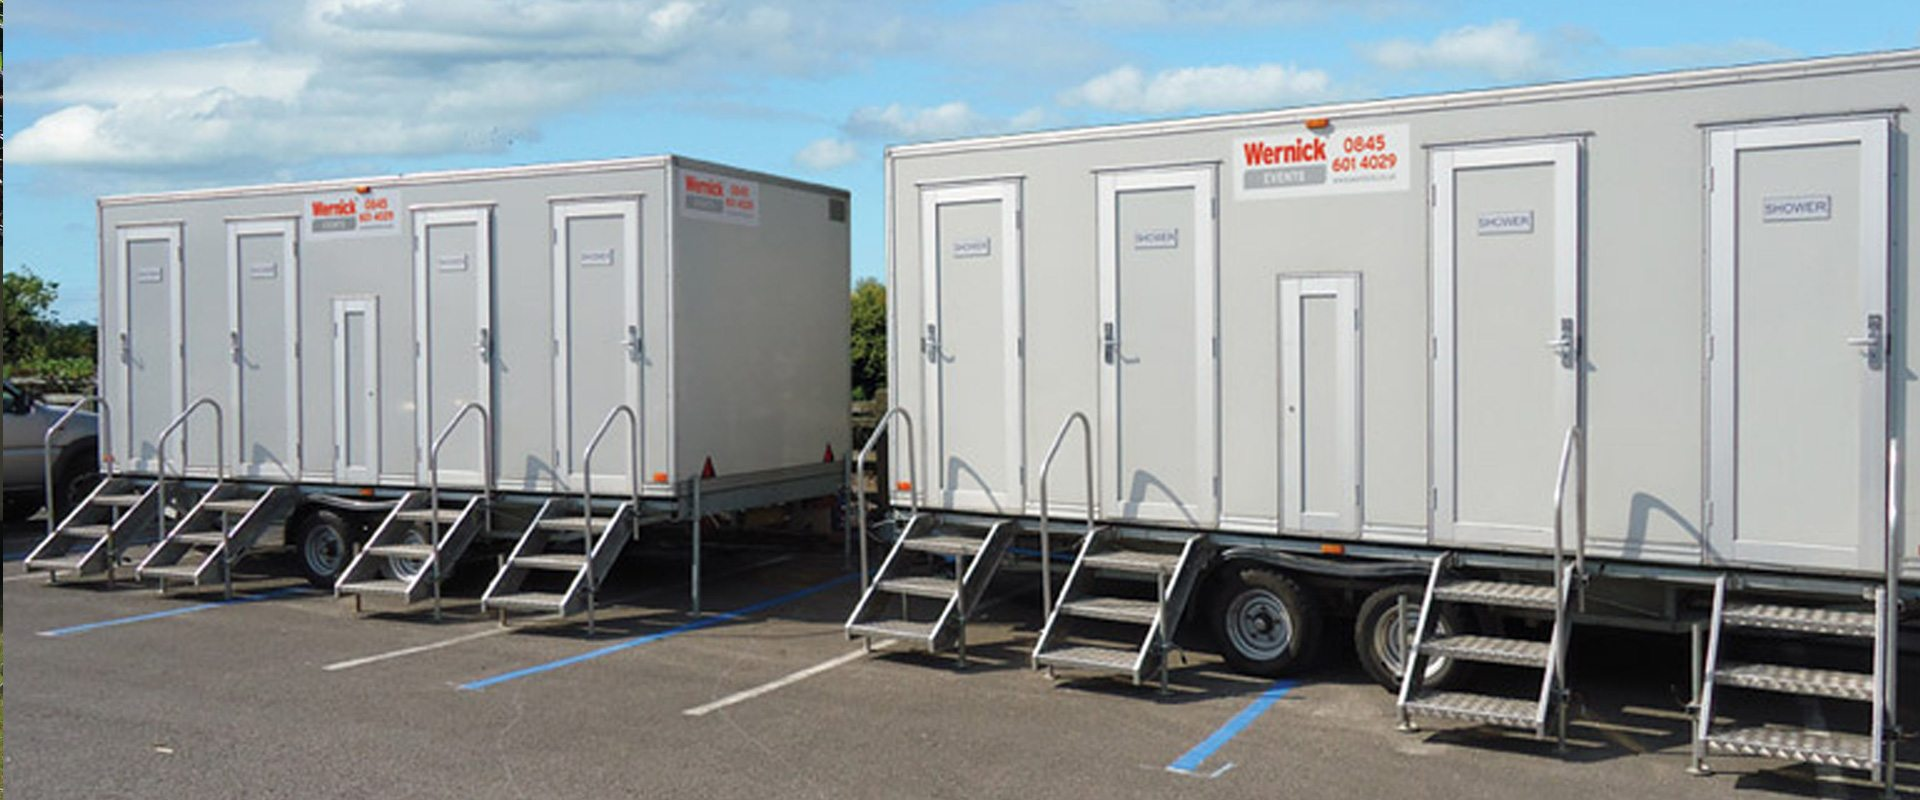 Mobile Shower Units for Hire  Wernick Events